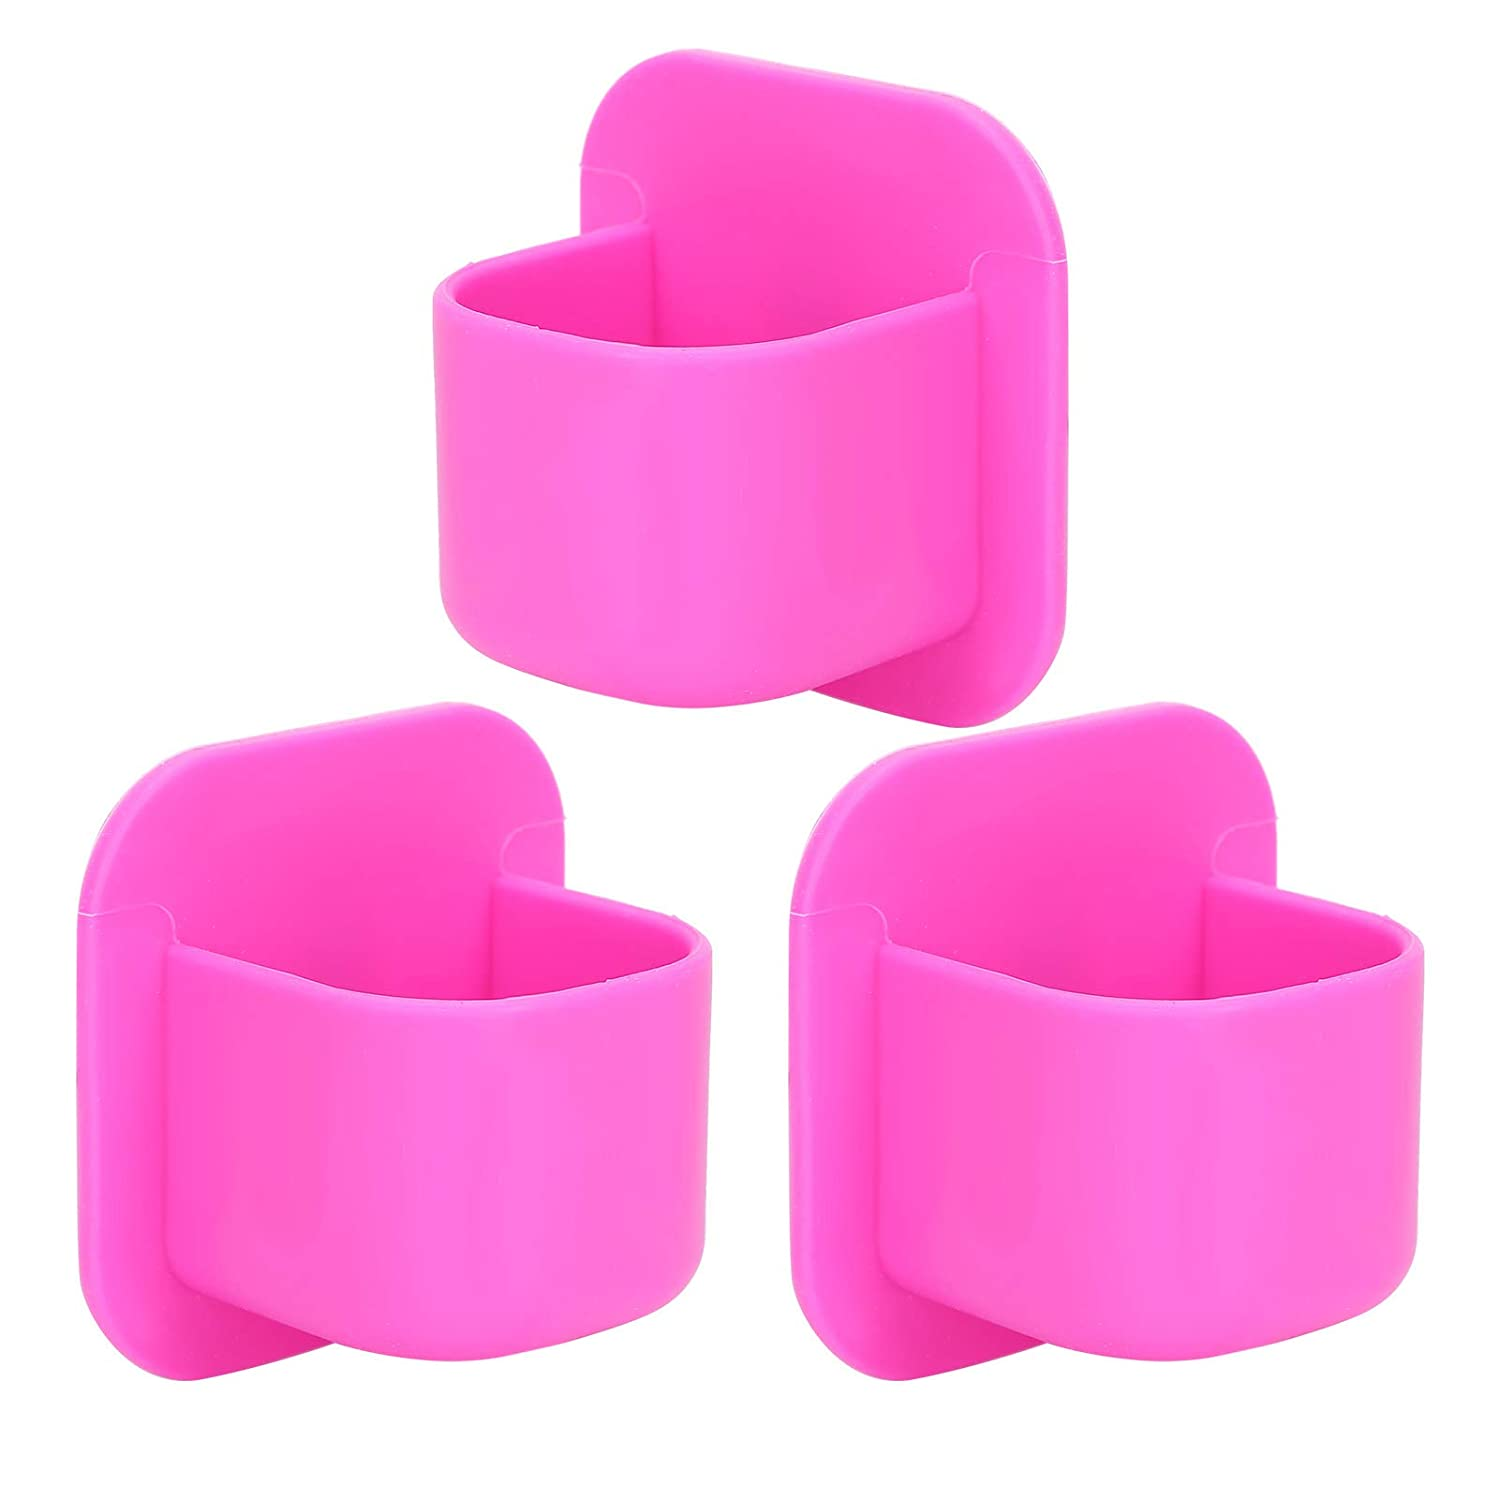 Powder Puff Holder, Easy To Clean Without Fading, Cosmetic Sponge Rack, A Total Of 3 Storage Racks Surable for Makeup Tools Home(rose Red)